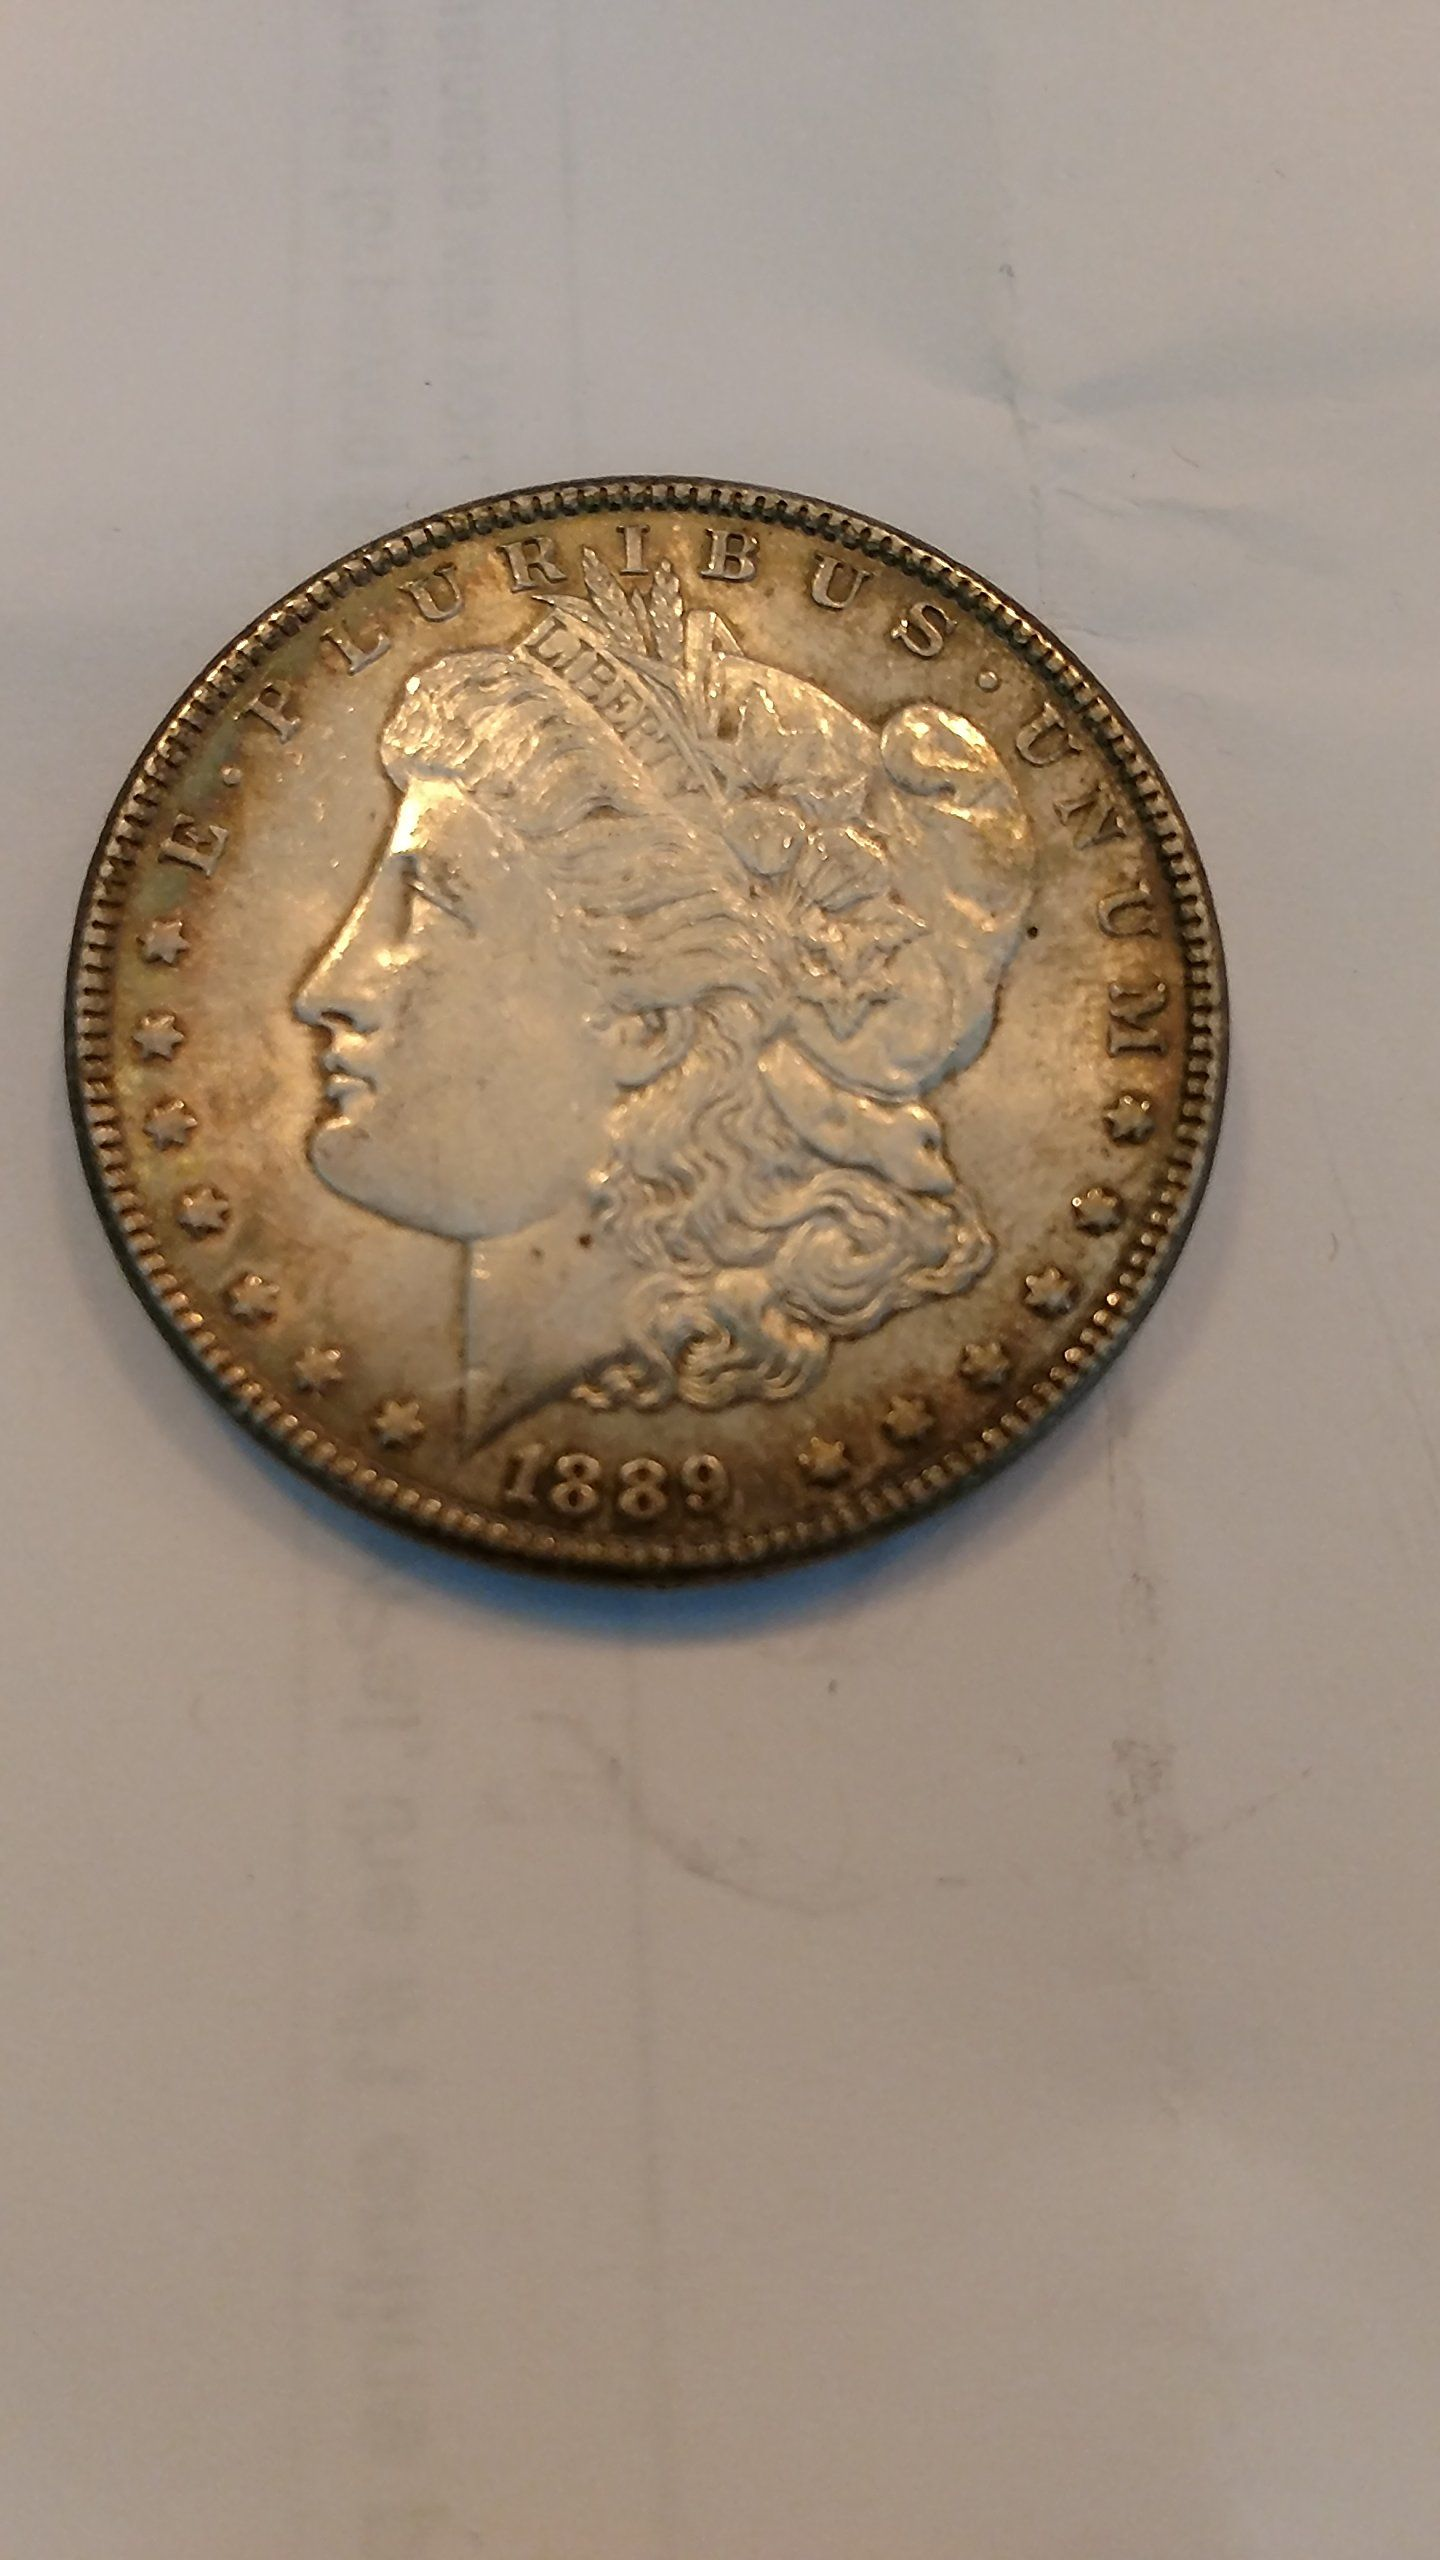 1889 No Mint Mark Morgan Dollar Collection Seller Good Detials Find Out More About The Great Product At The Image Link In 2020 Morgan Dollars Mark Morgan Coin Store